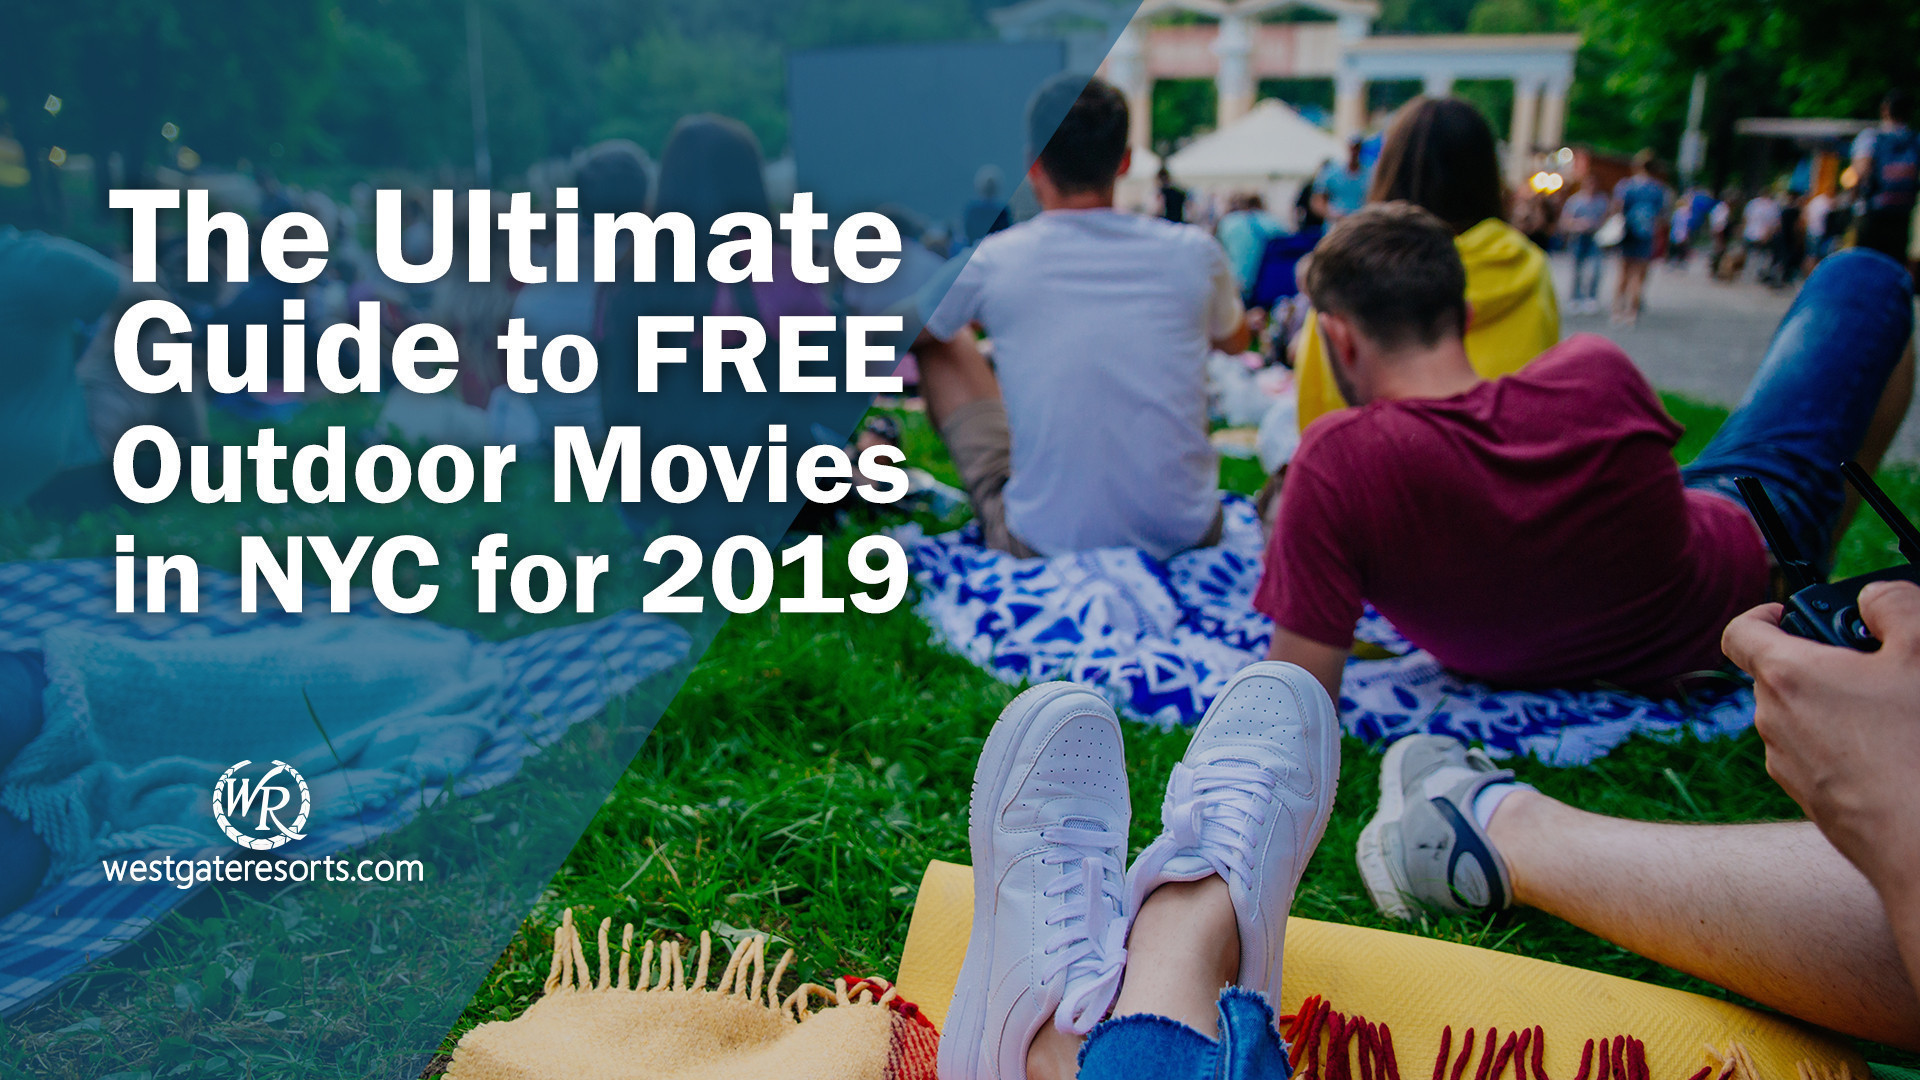 The Ultimate Guide to Free Outdoor Movies in NYC for 2019 | Free